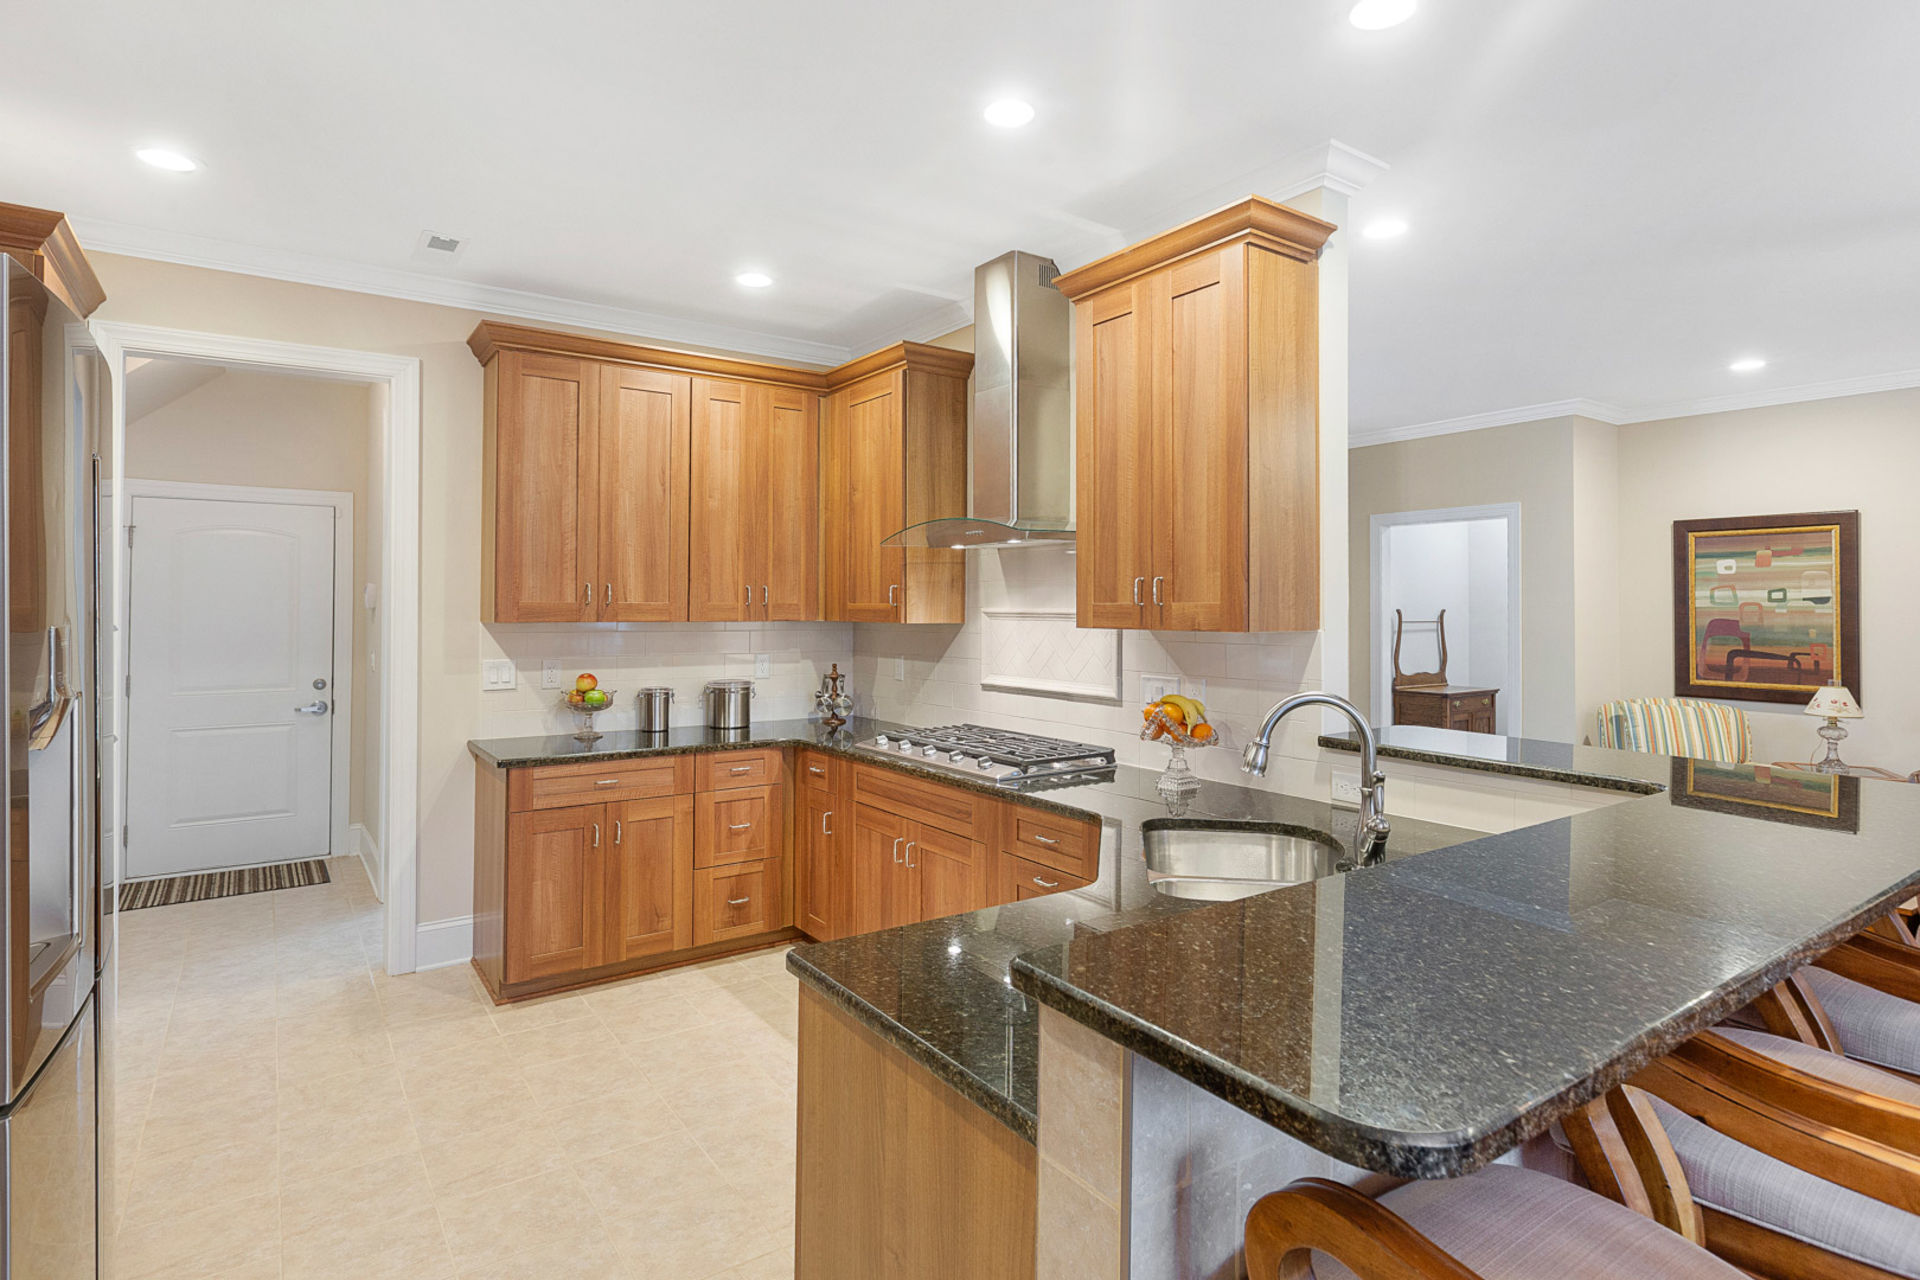 Price Reduced! OPEN HOUSE SUNDAY!